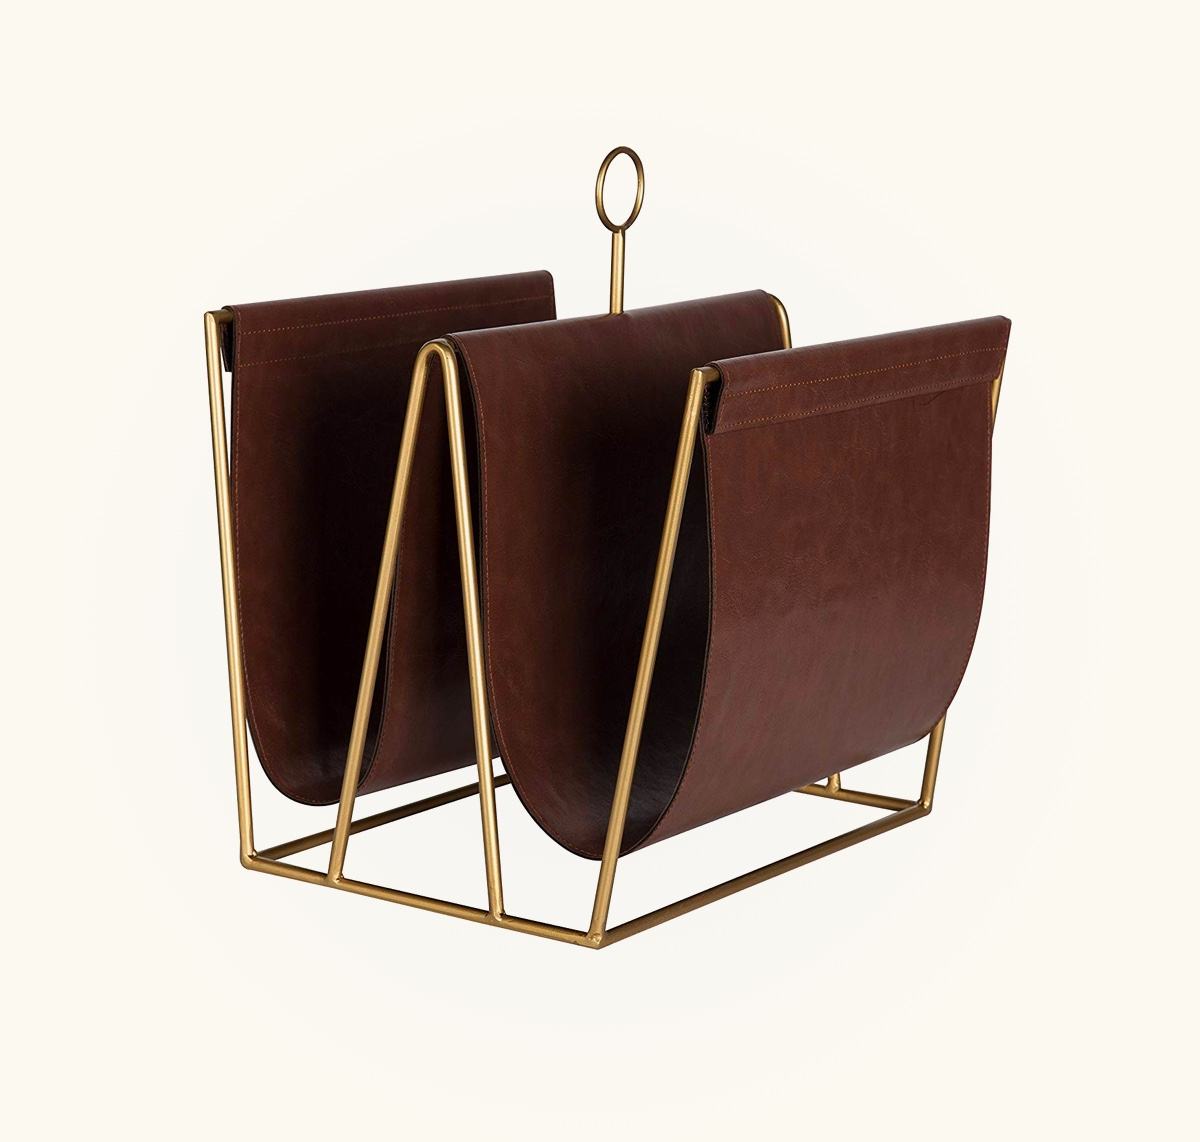 Metal-Faux-Leather-Magazine-Holder-Gold-And-Brown-Masculine-Home-Office-Decor